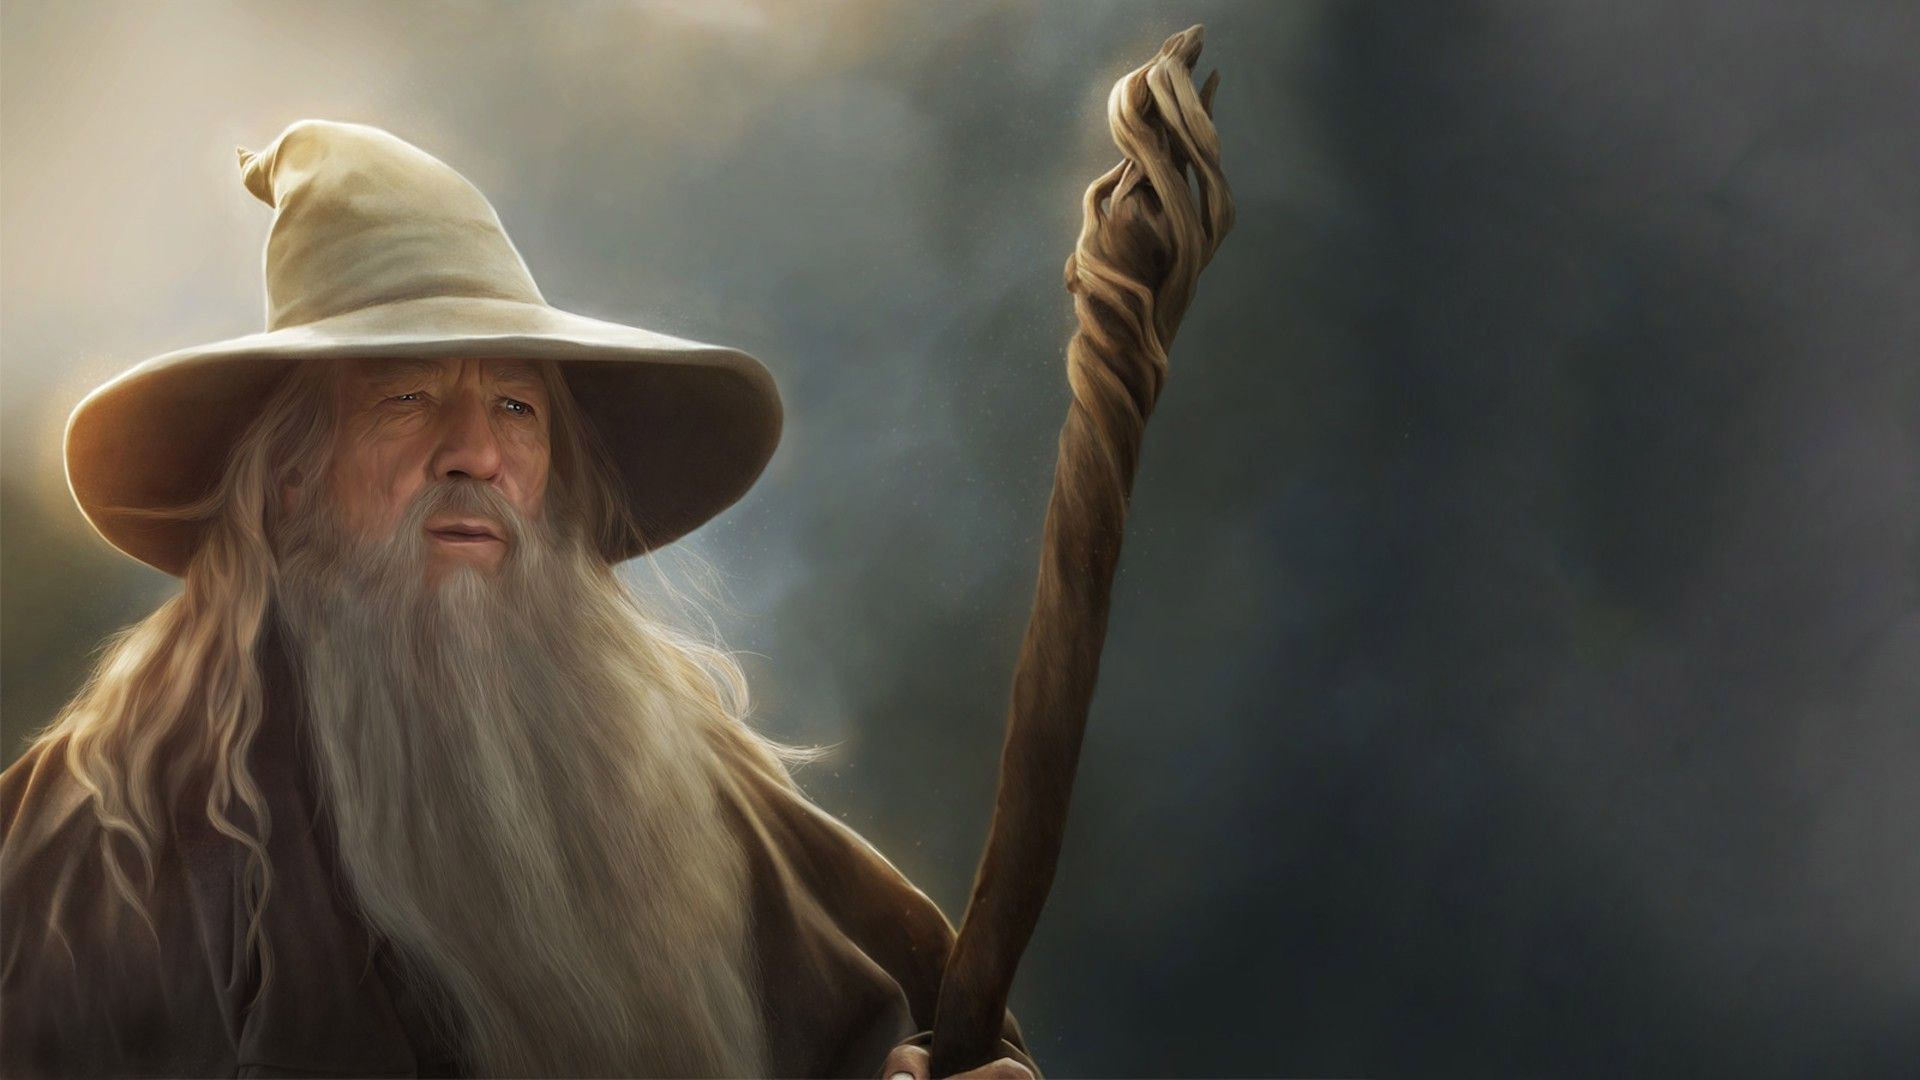 Gandalf - The Lord of the Rings wallpaper